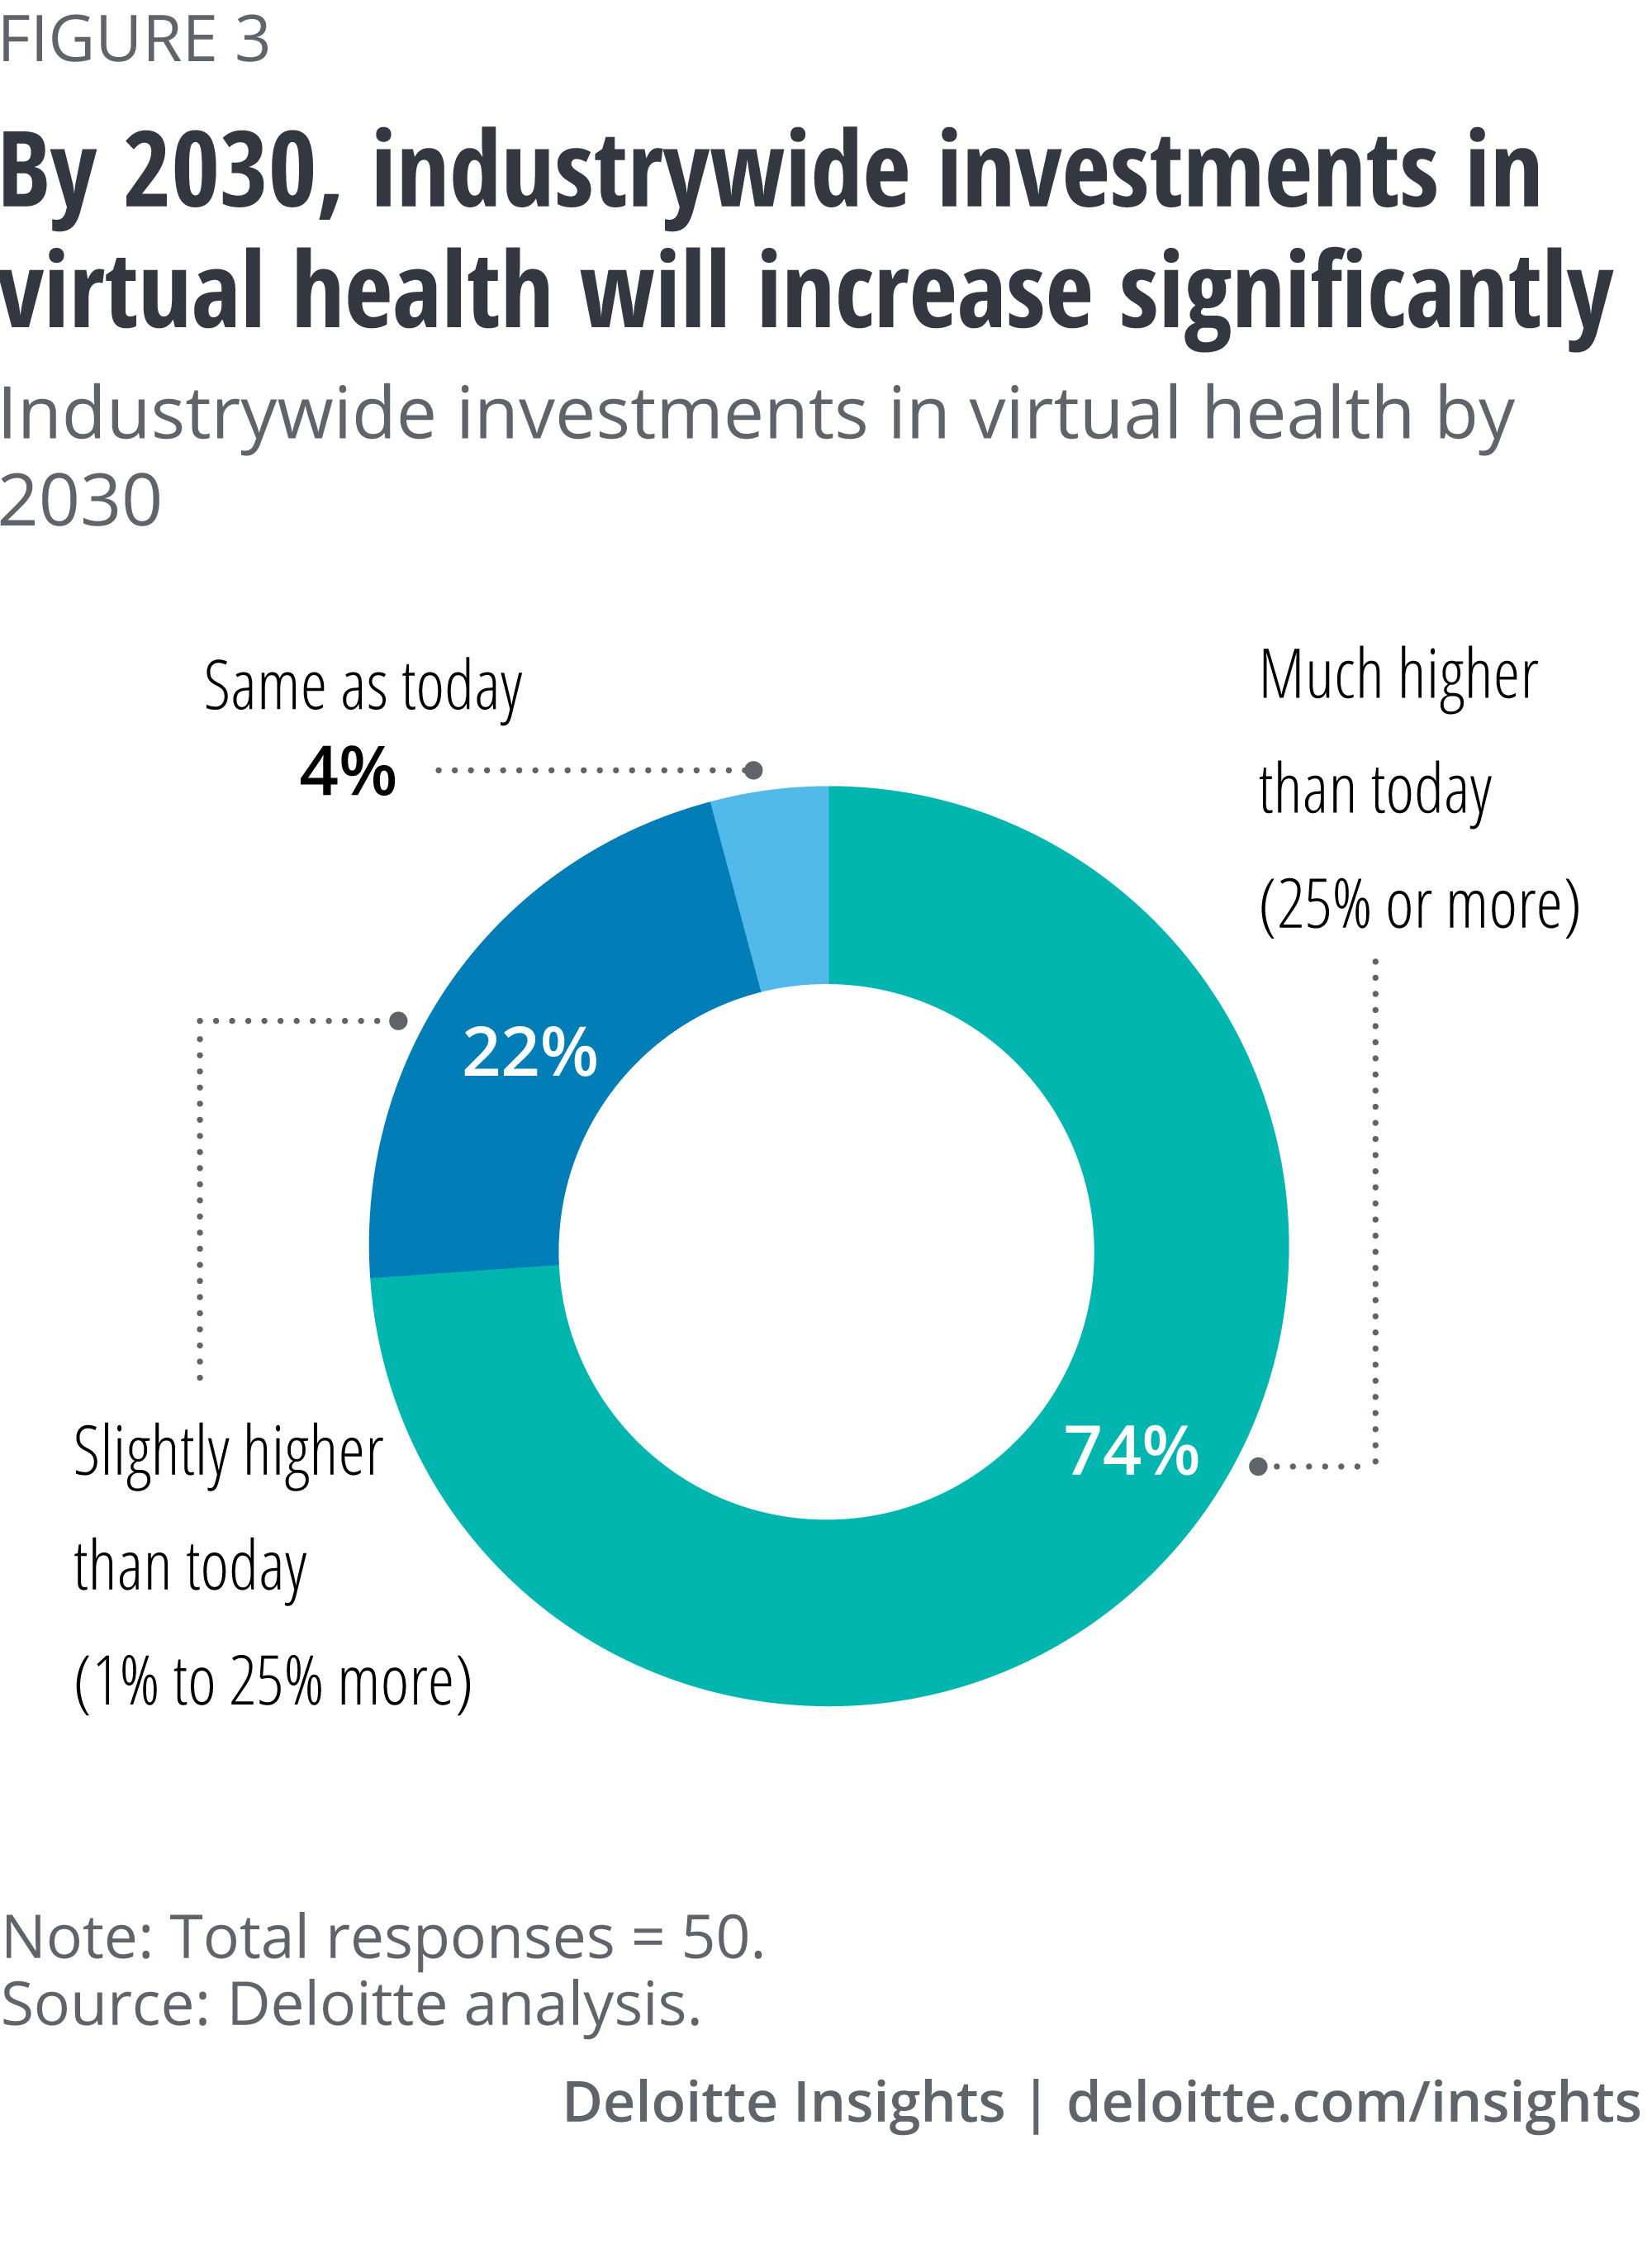 By 2030, industrywide investments in virtual health will increase significantly